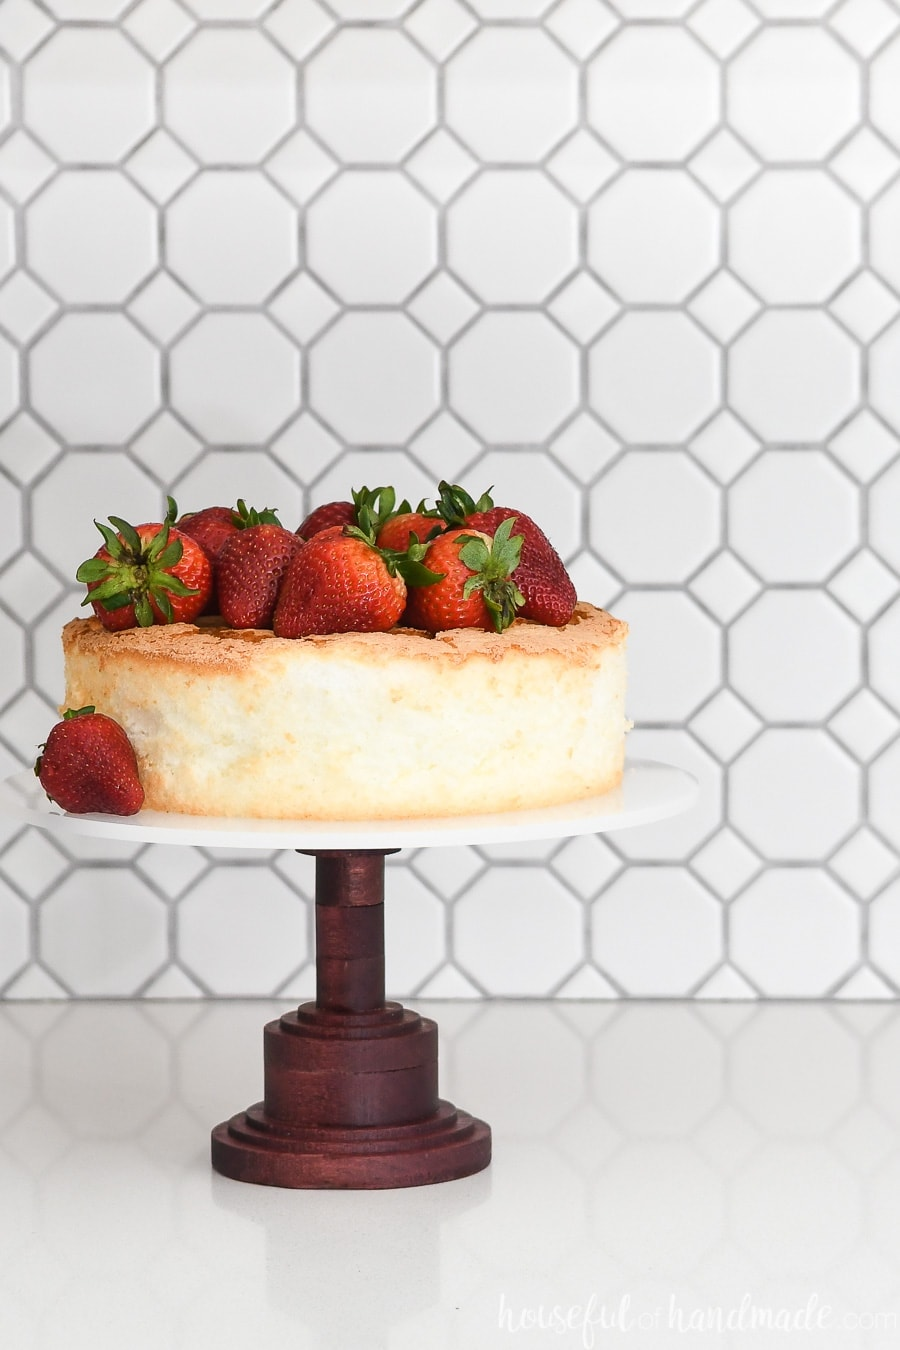 DIY cake stand made with a Purple Heart base and acrylic top with an angel food cake and strawberries on top.